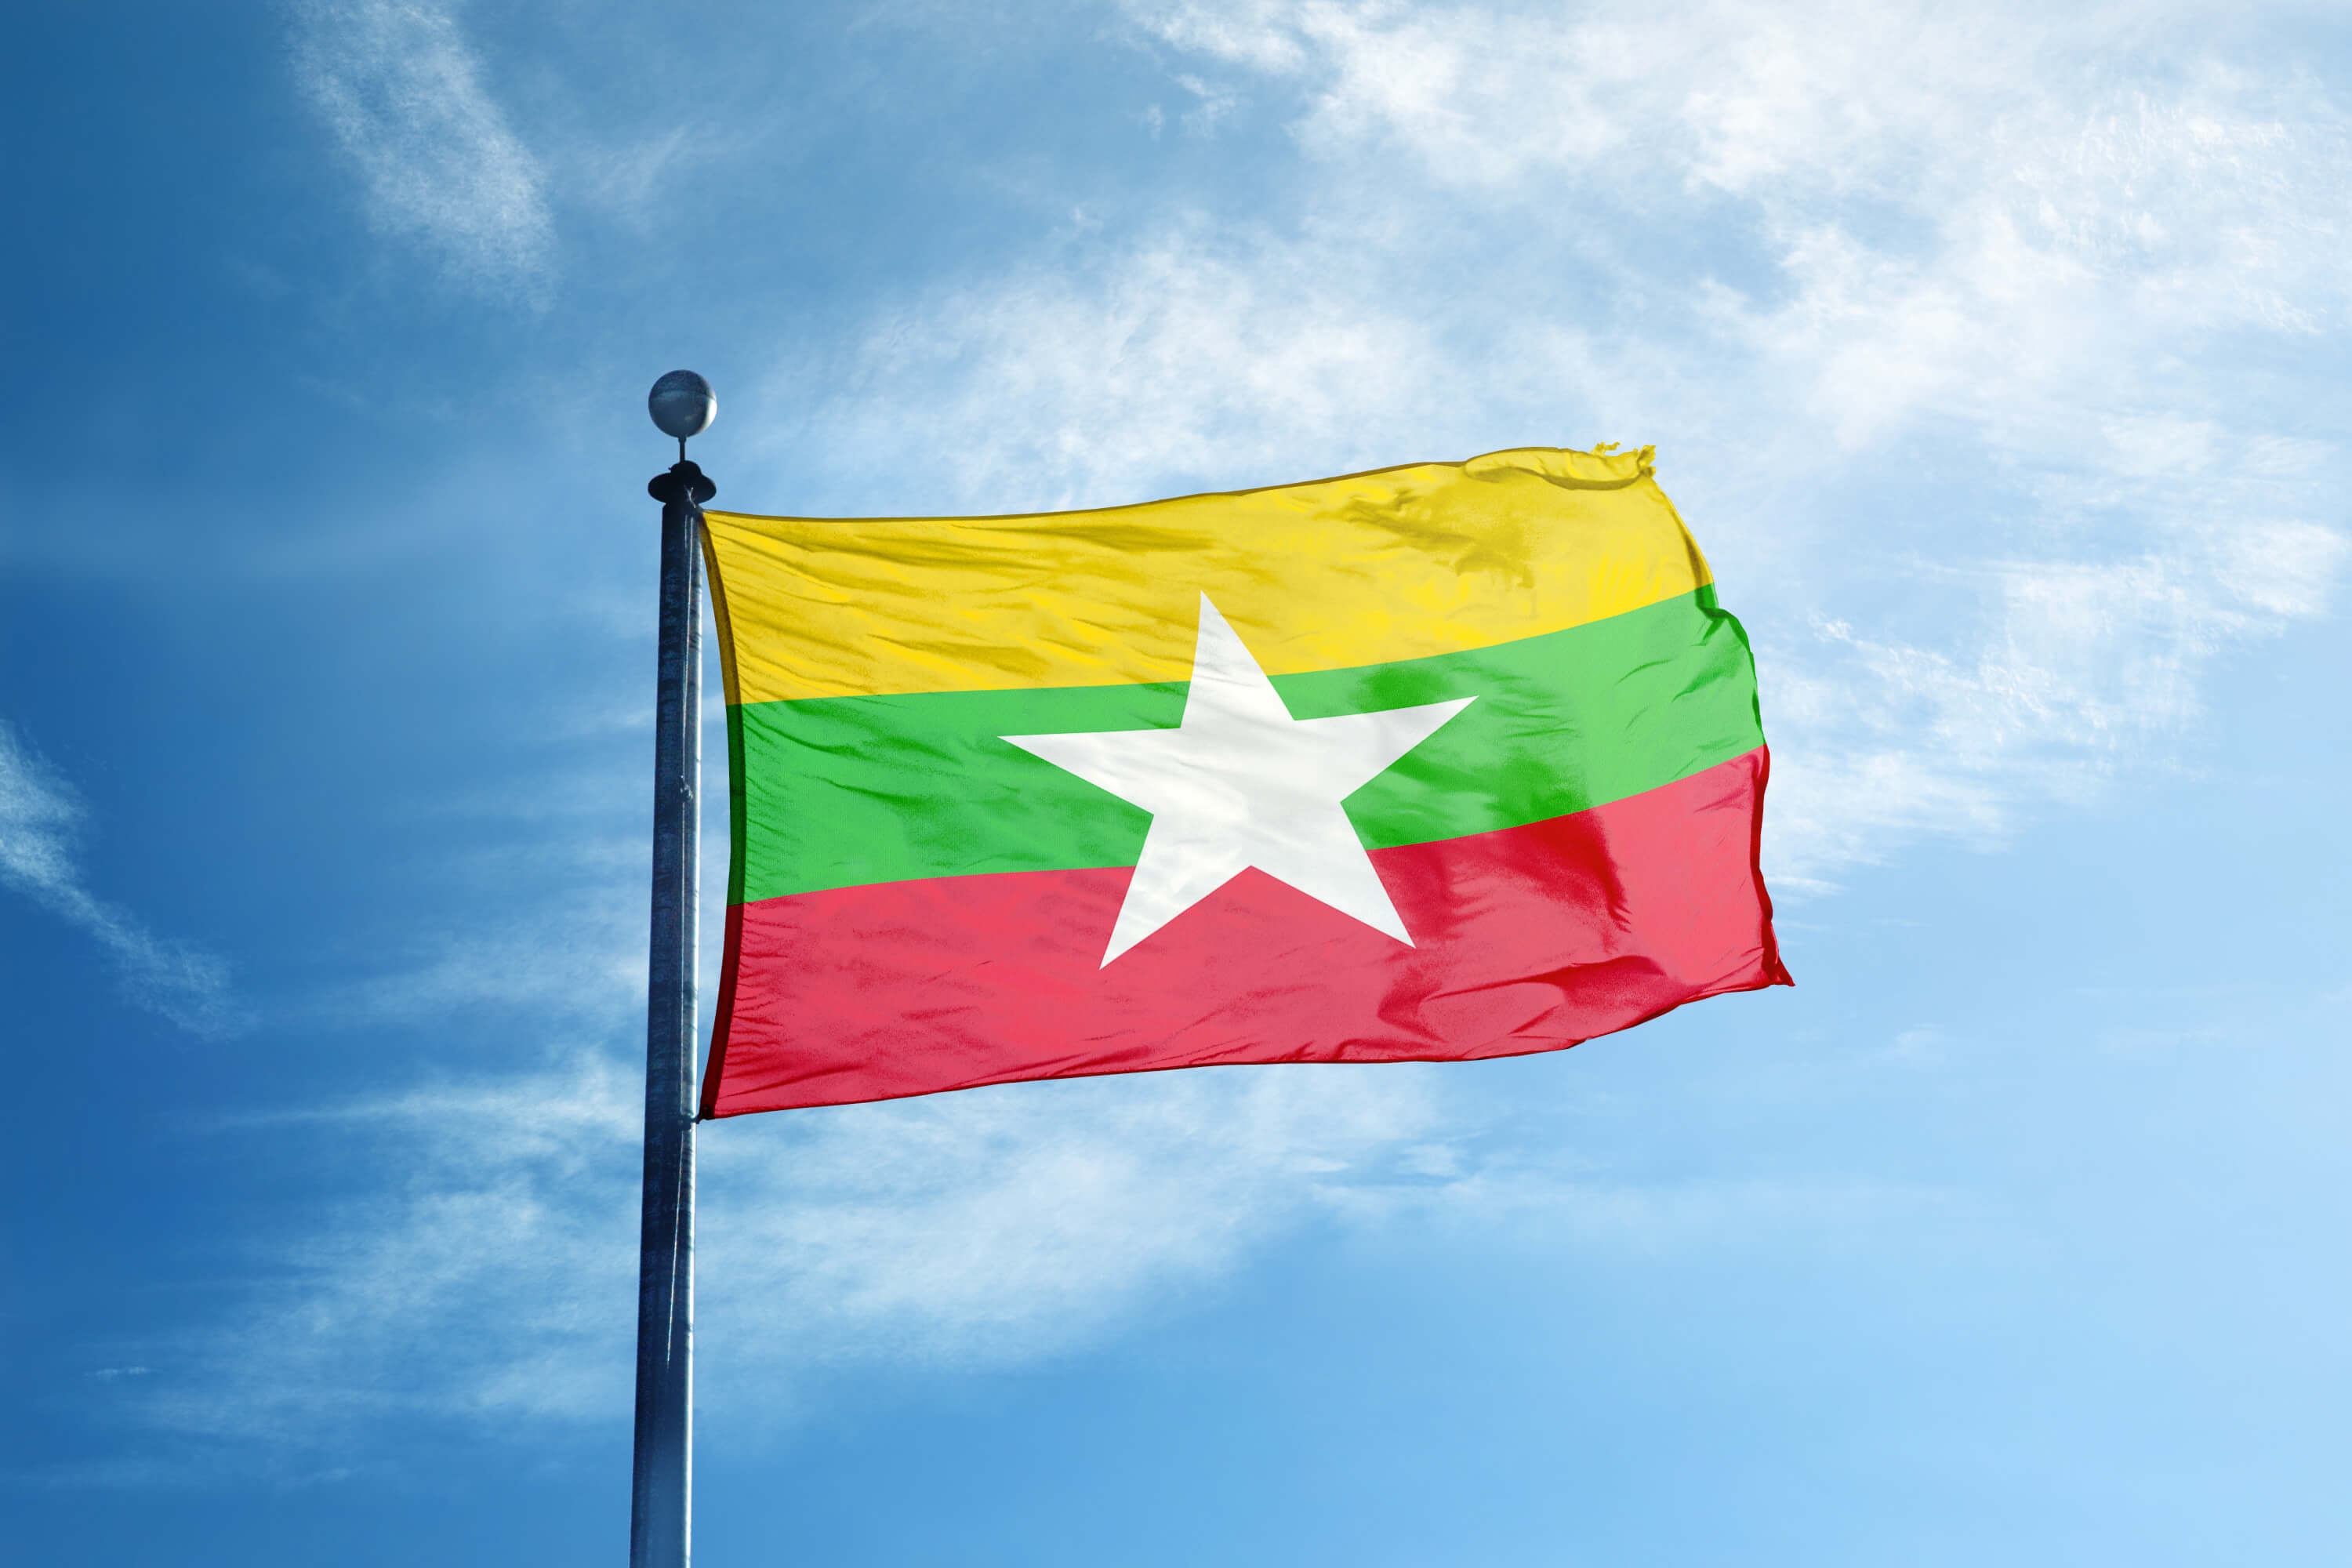 New Investment law in Myanmar will benefit foreign investors and authorise IPOs for joint ventures